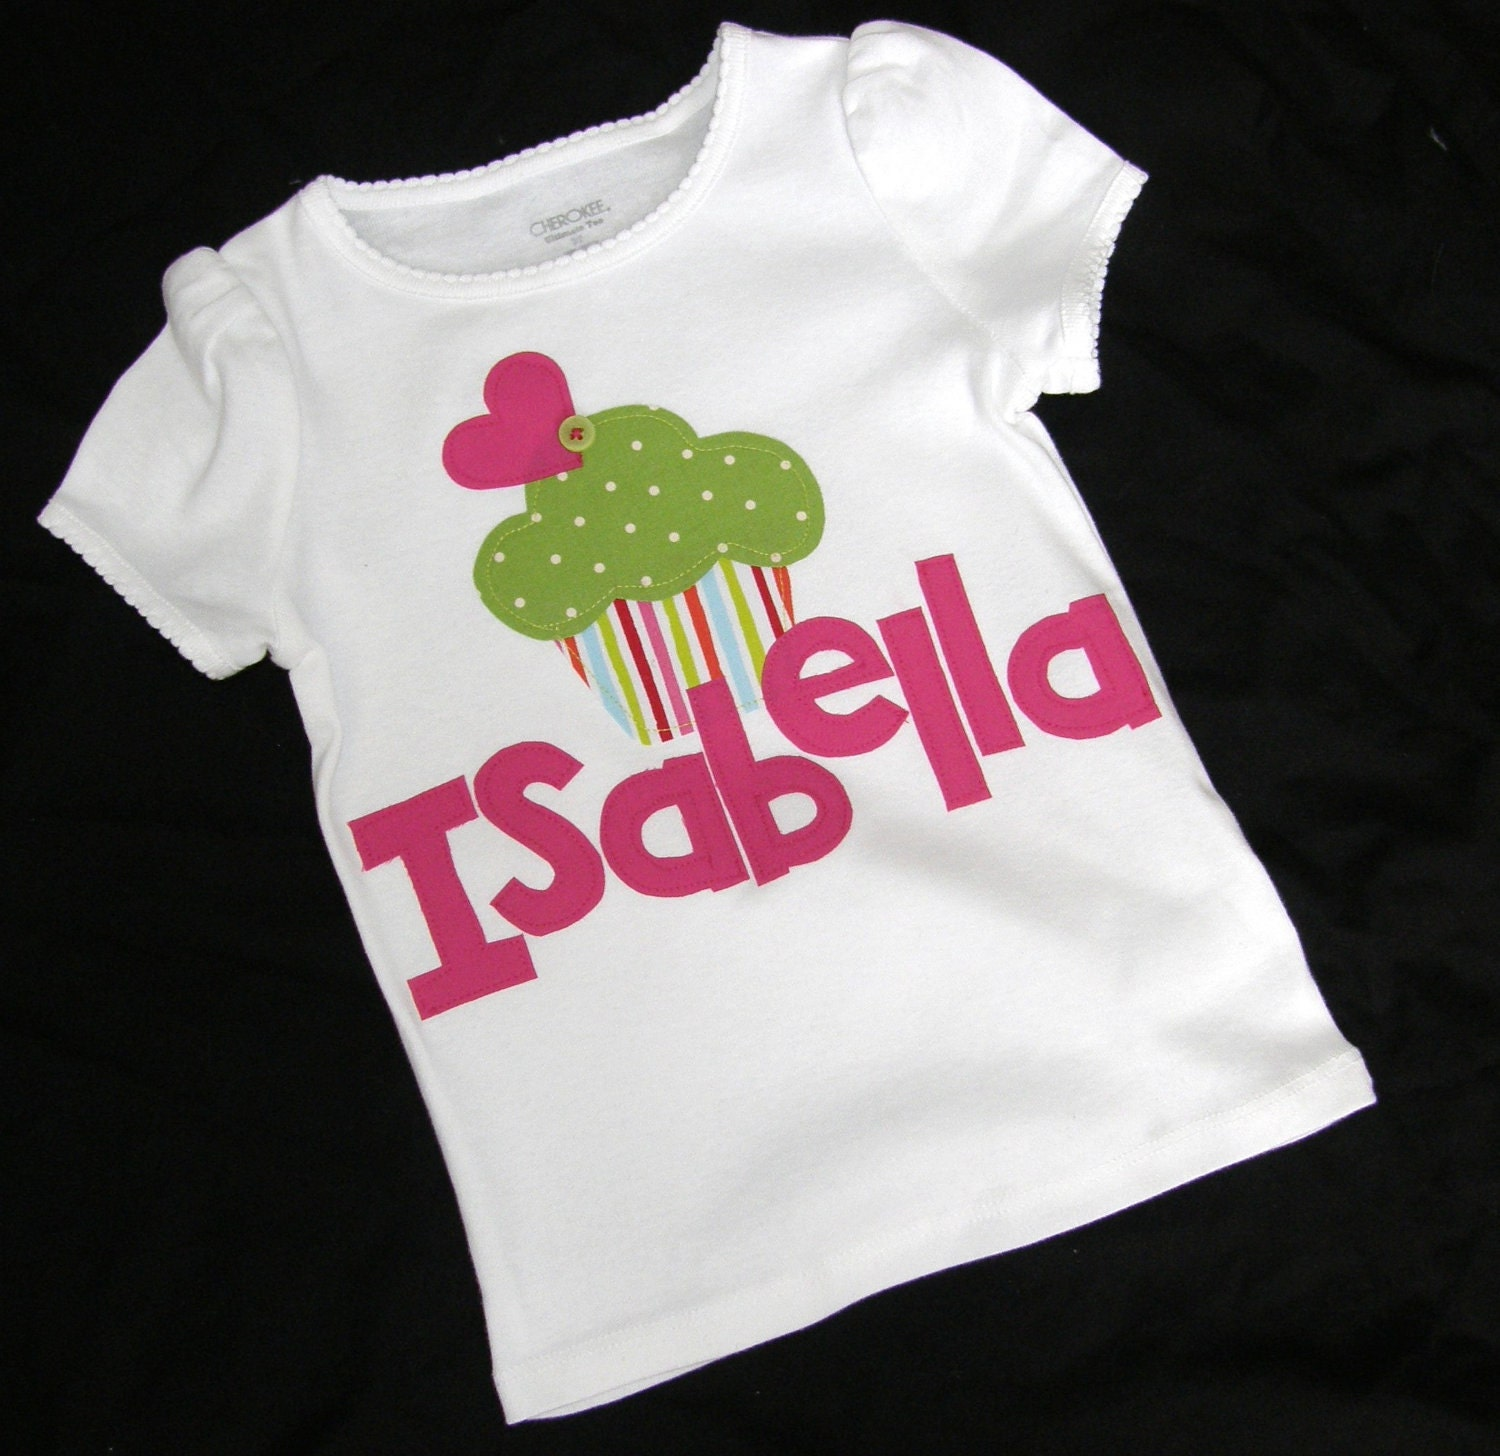 Baby girl, toddler onesie with lime green polka dot and striped cupcake applique personalized with initial name in sizes newborn, 3m 6m 9m 12m or a plain white onesie or shirt sizes 12m 18m 24m 3T 4T 5T 6 7 8 10 12 14 16